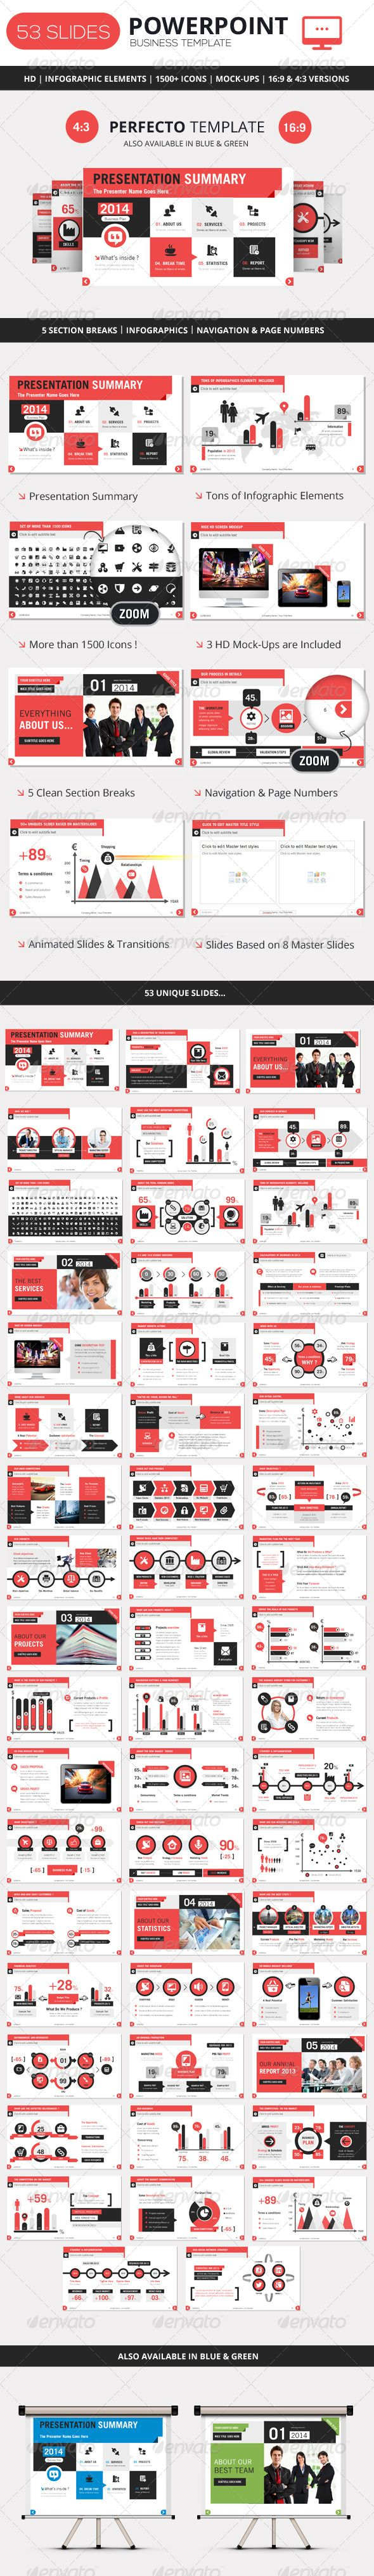 PowerPoint Business Presentation Template - Business Powerpoint Templates